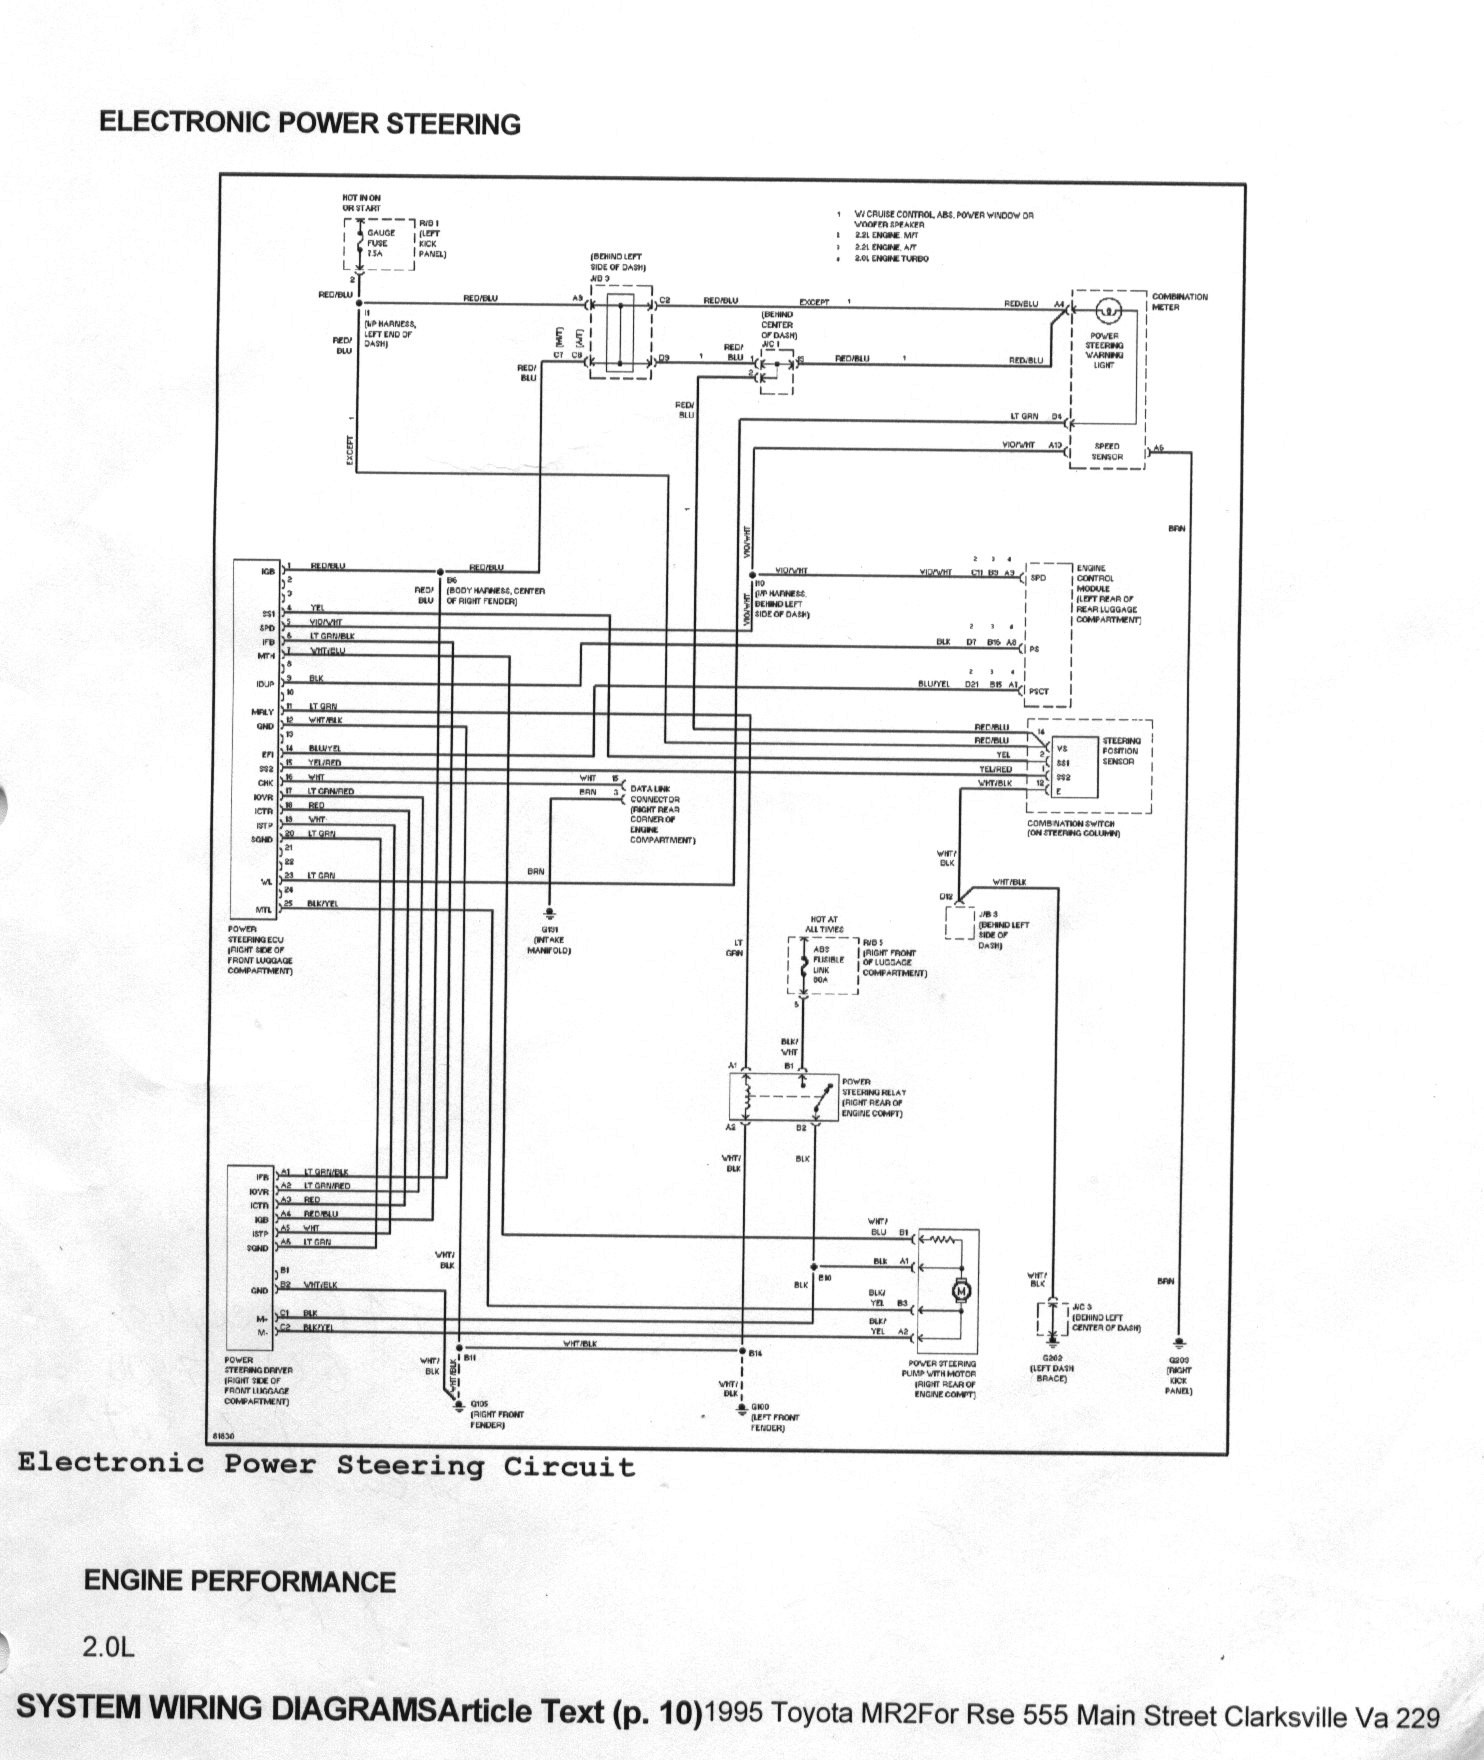 toyota mr2 power steering system circuit diagram 1